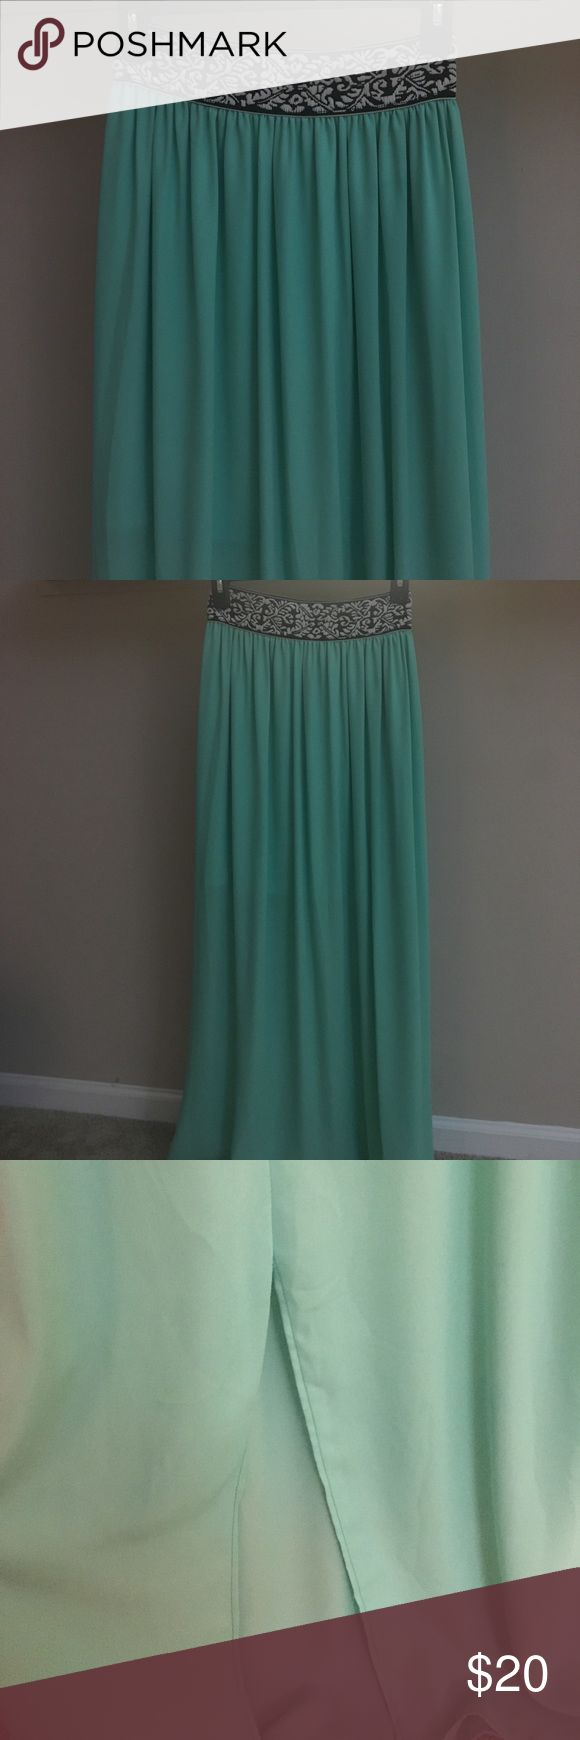 Brand new mint maxi skirt from Francesca's! This maxi skirt is adorable! The black-and-white waistband is stretchy, and it has a mint slip under the maxiskirt. It also has a slit as pictured:) perfect condition! Francesca's Collections Skirts Maxi